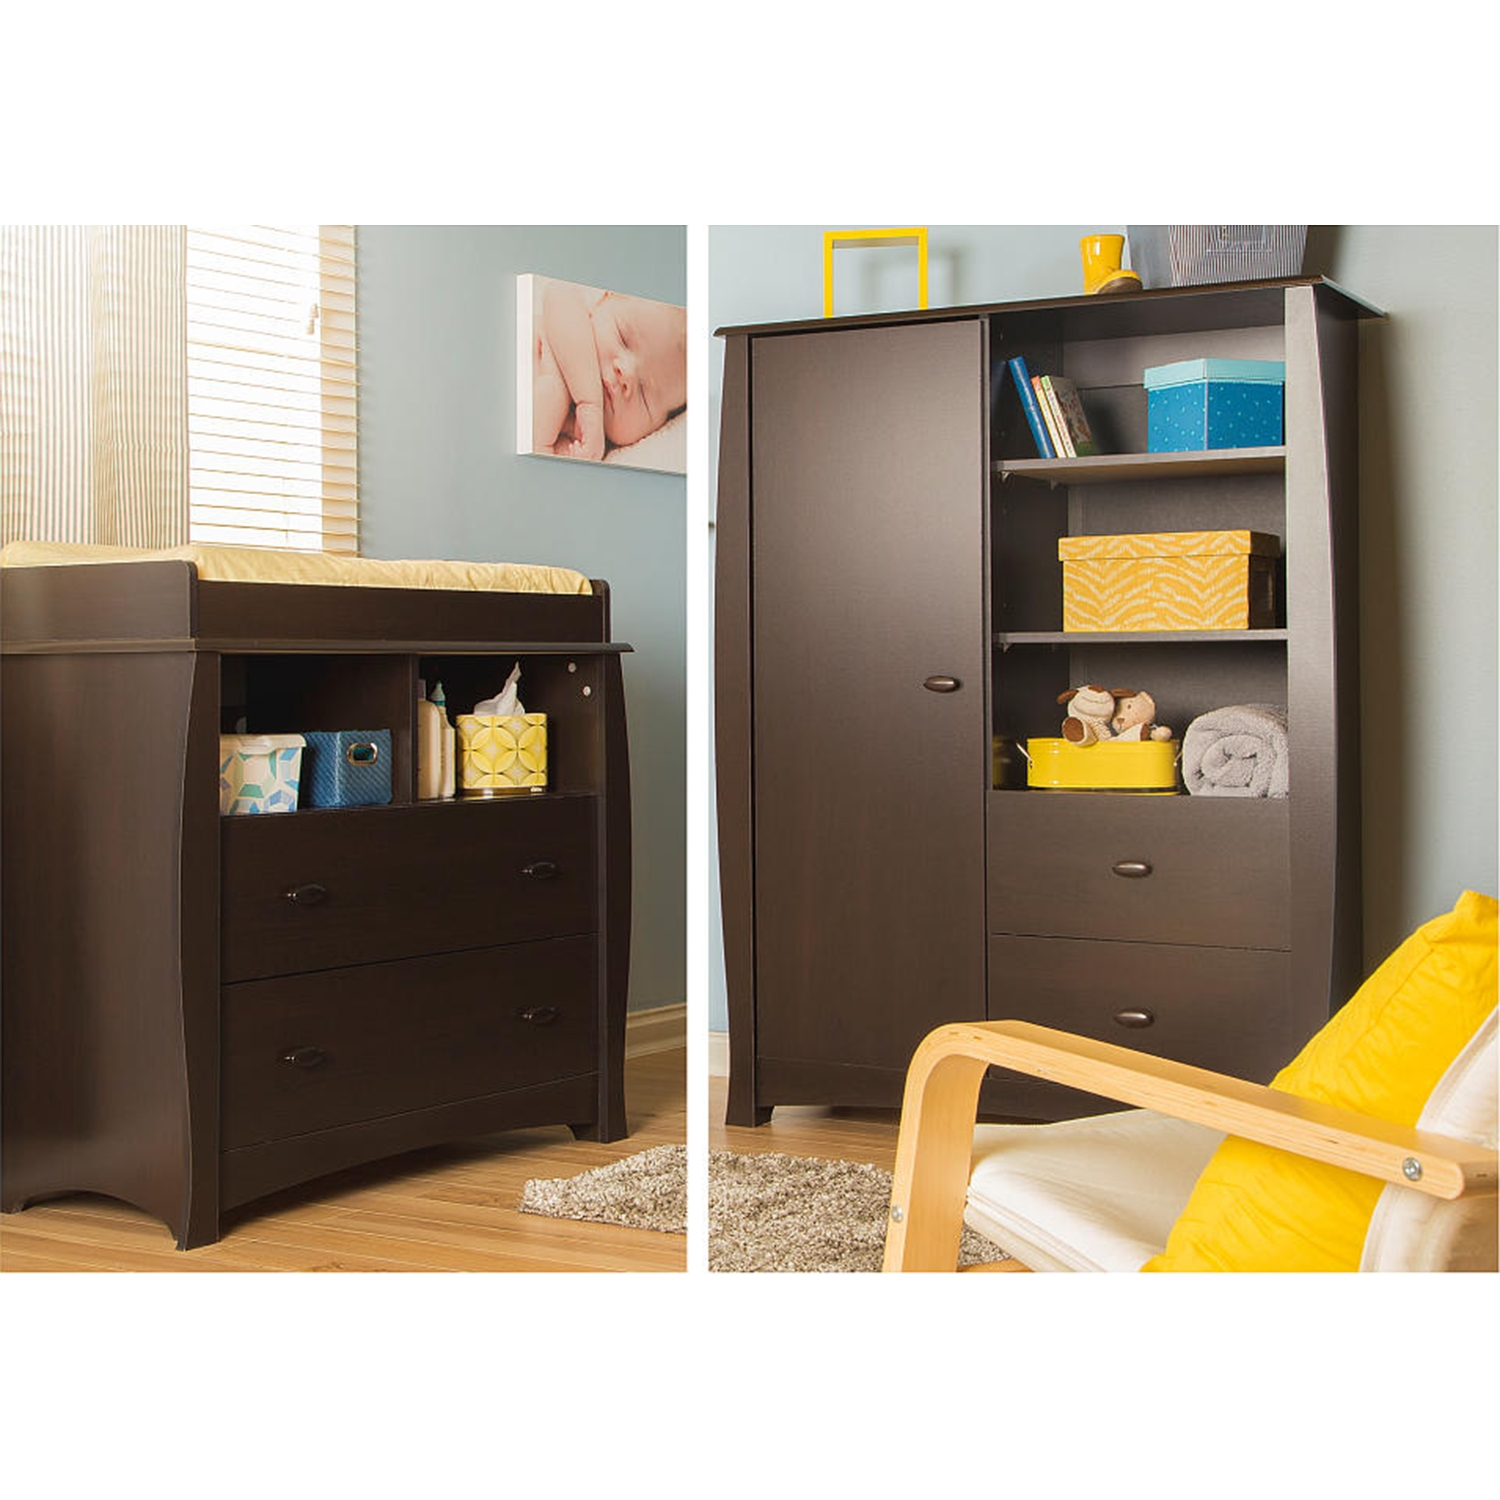 Beehive Changing Table and Armoire - Removable Changing Station, Espresso - SS-3619B2